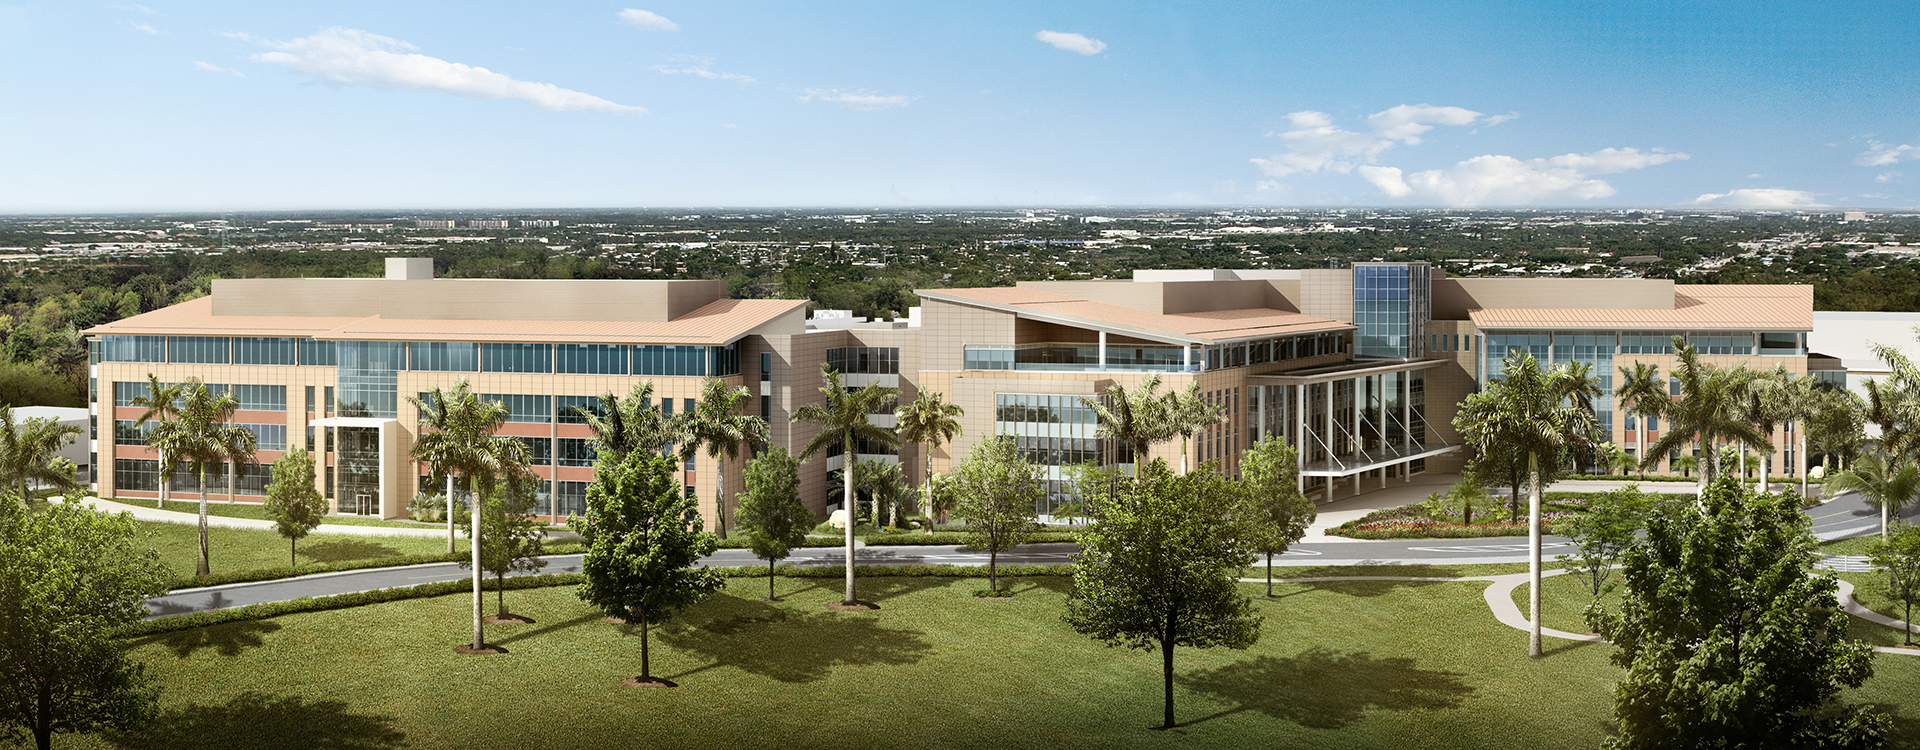 Rendering of the Miami Cancer Institute building